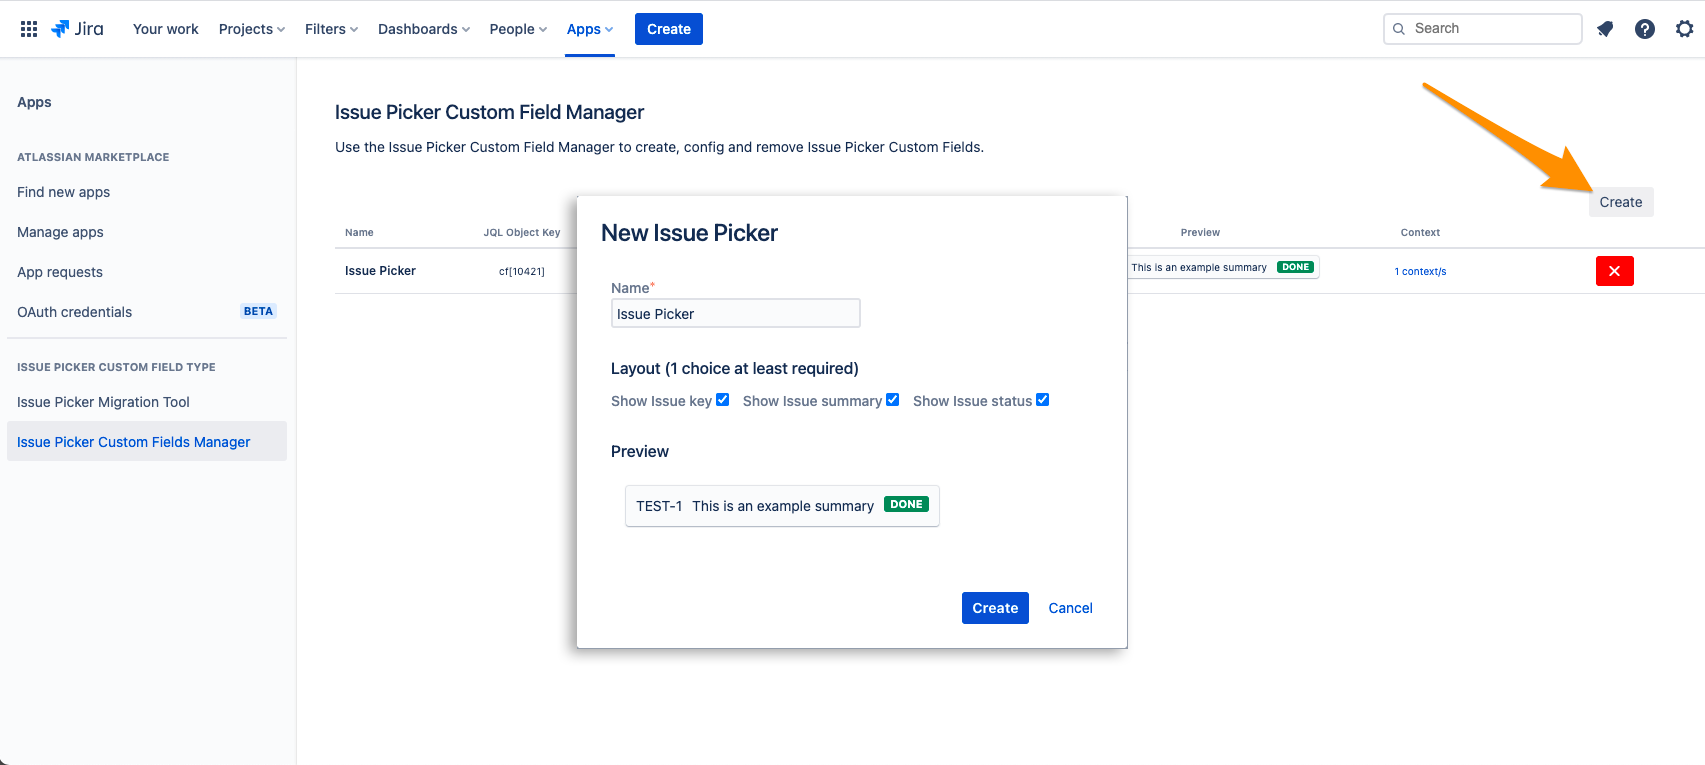 Issue Picker Custom Field Type - How create a new custom field type in Jira